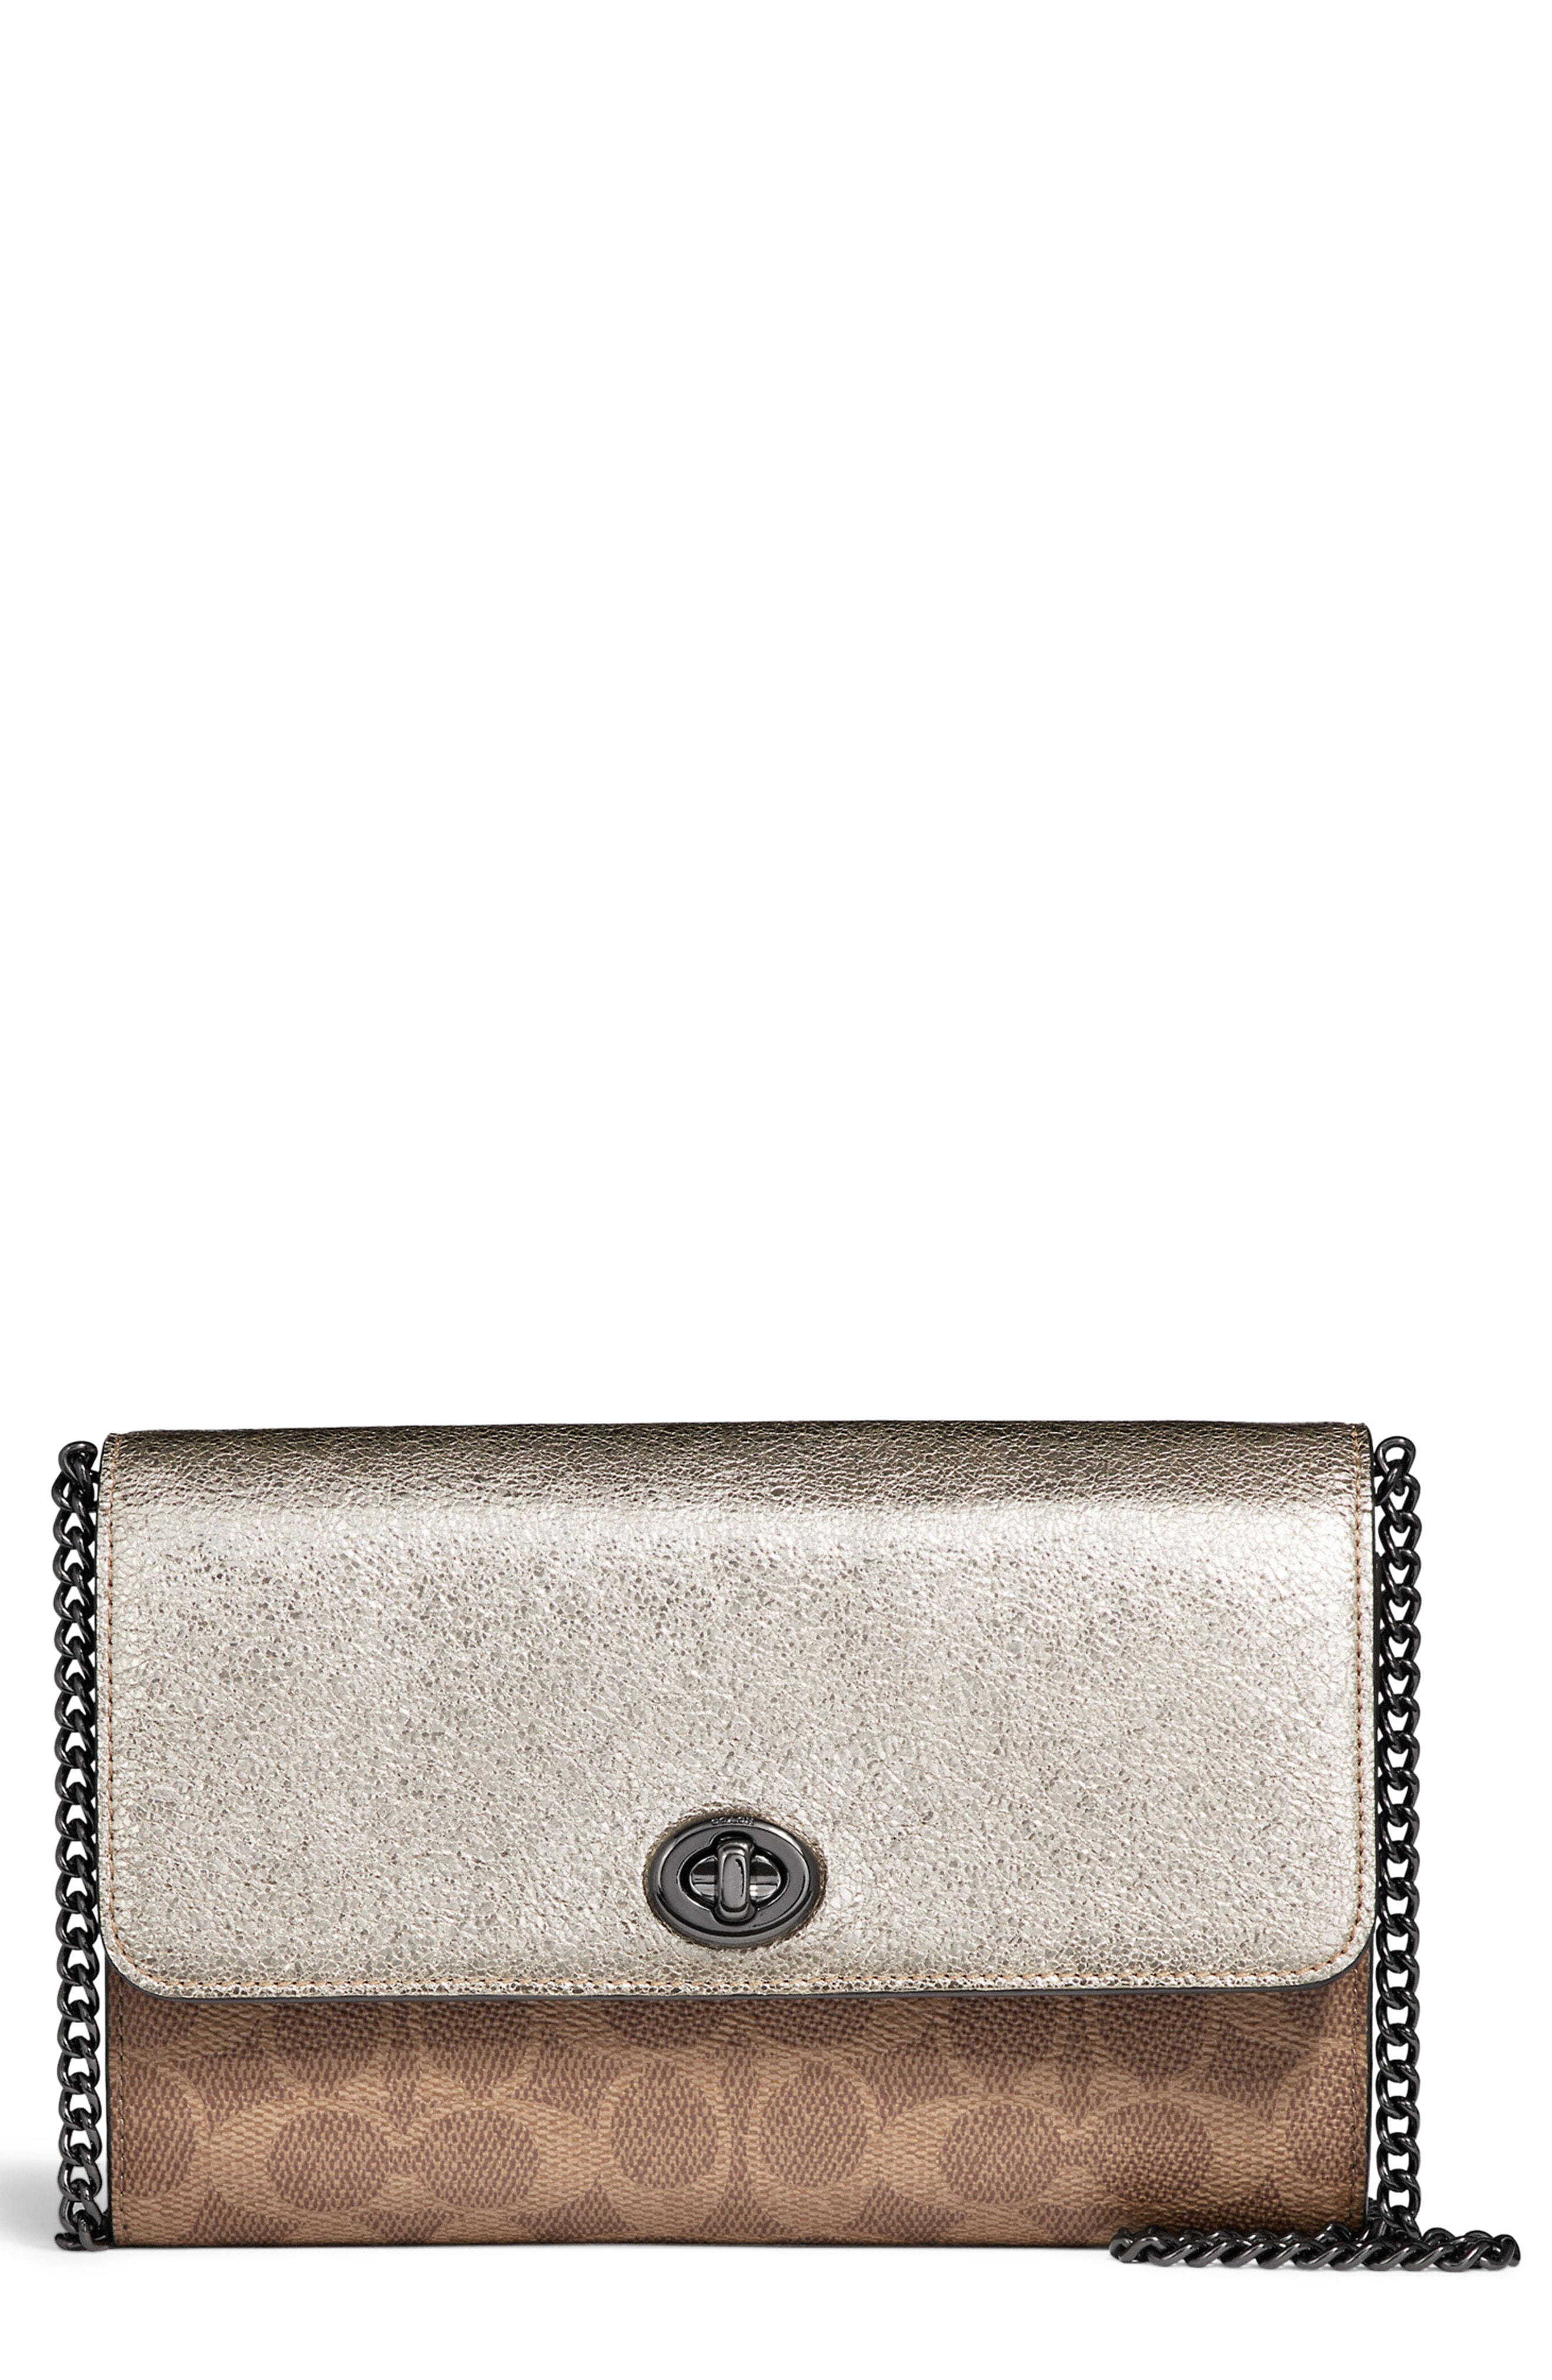 COACH Colorblock Metallic Leather & Coated Canvas Wallet